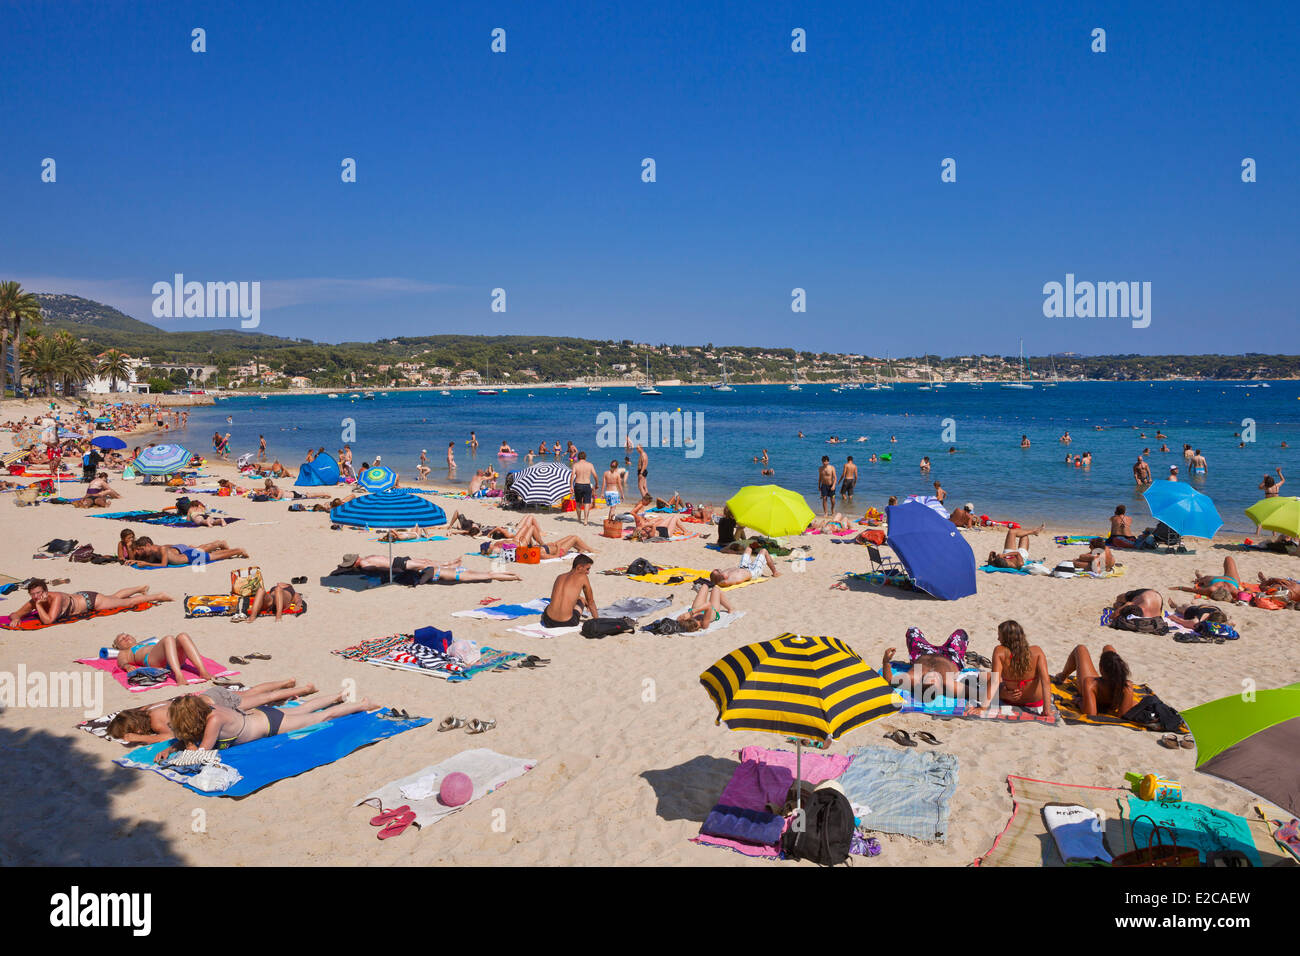 France, Var, Bandol, seaside pubs and restaurants - Stock Image